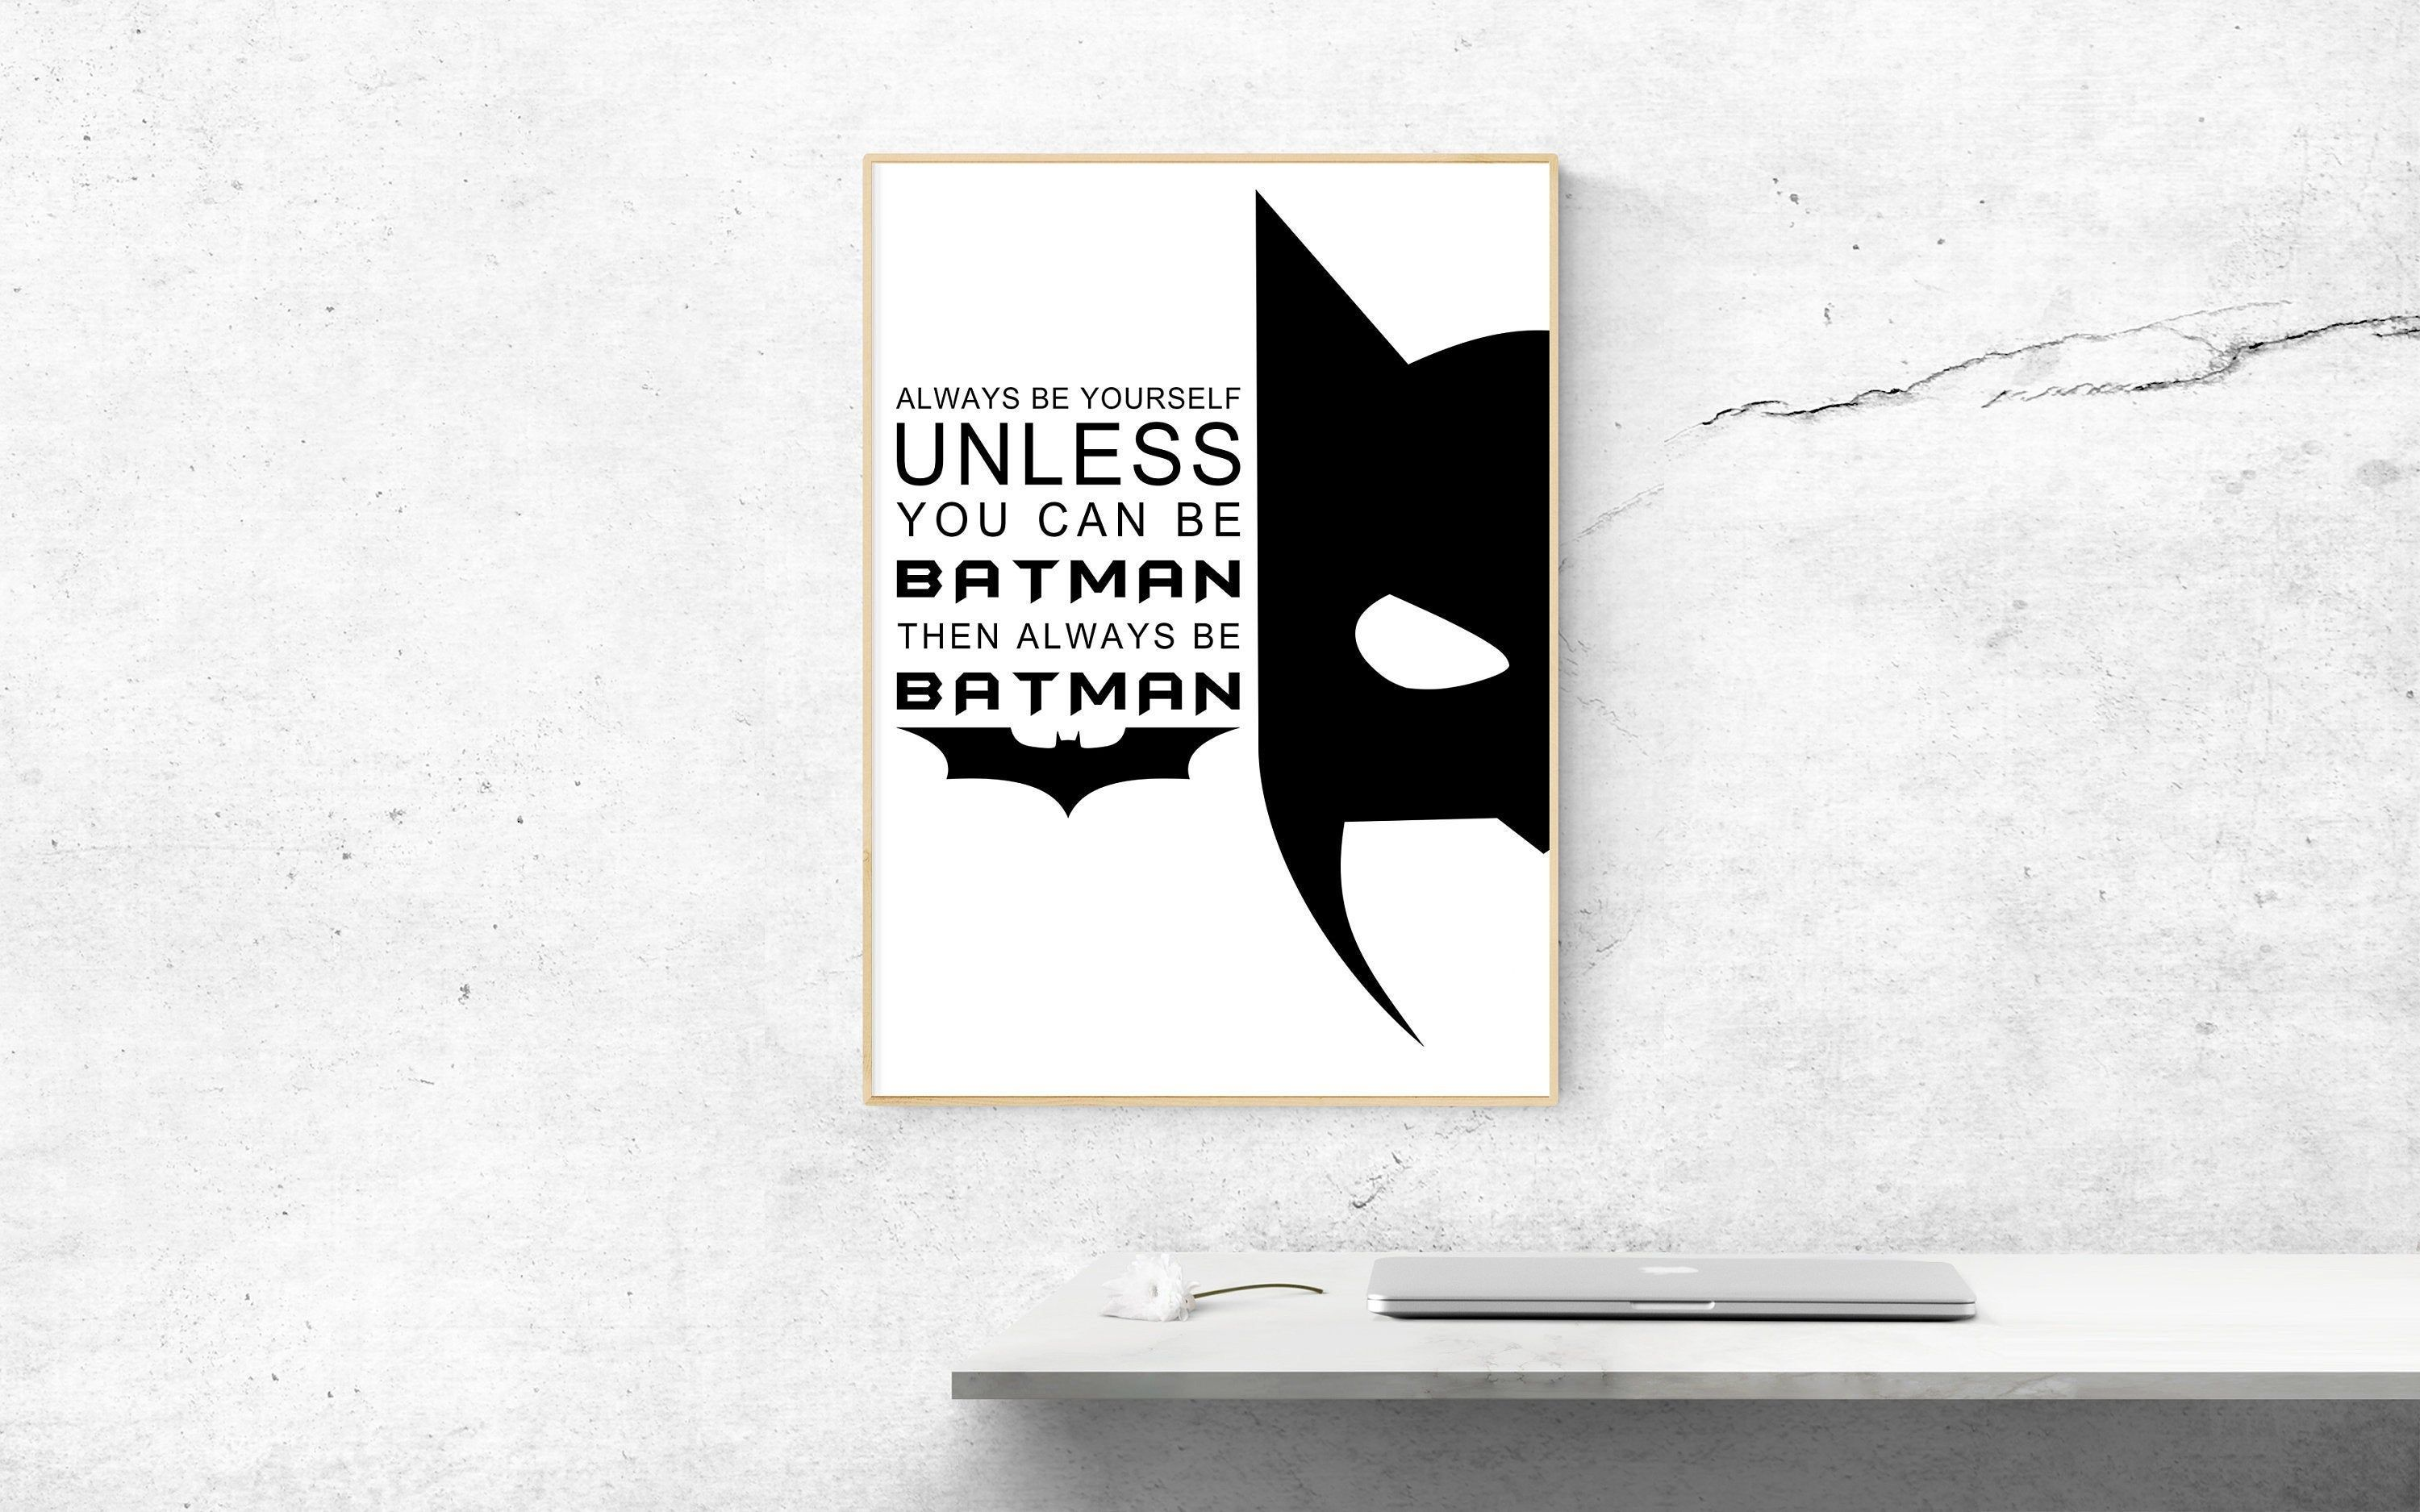 Always Be Yourself Unless You Can Be Batman Printable Wall Art